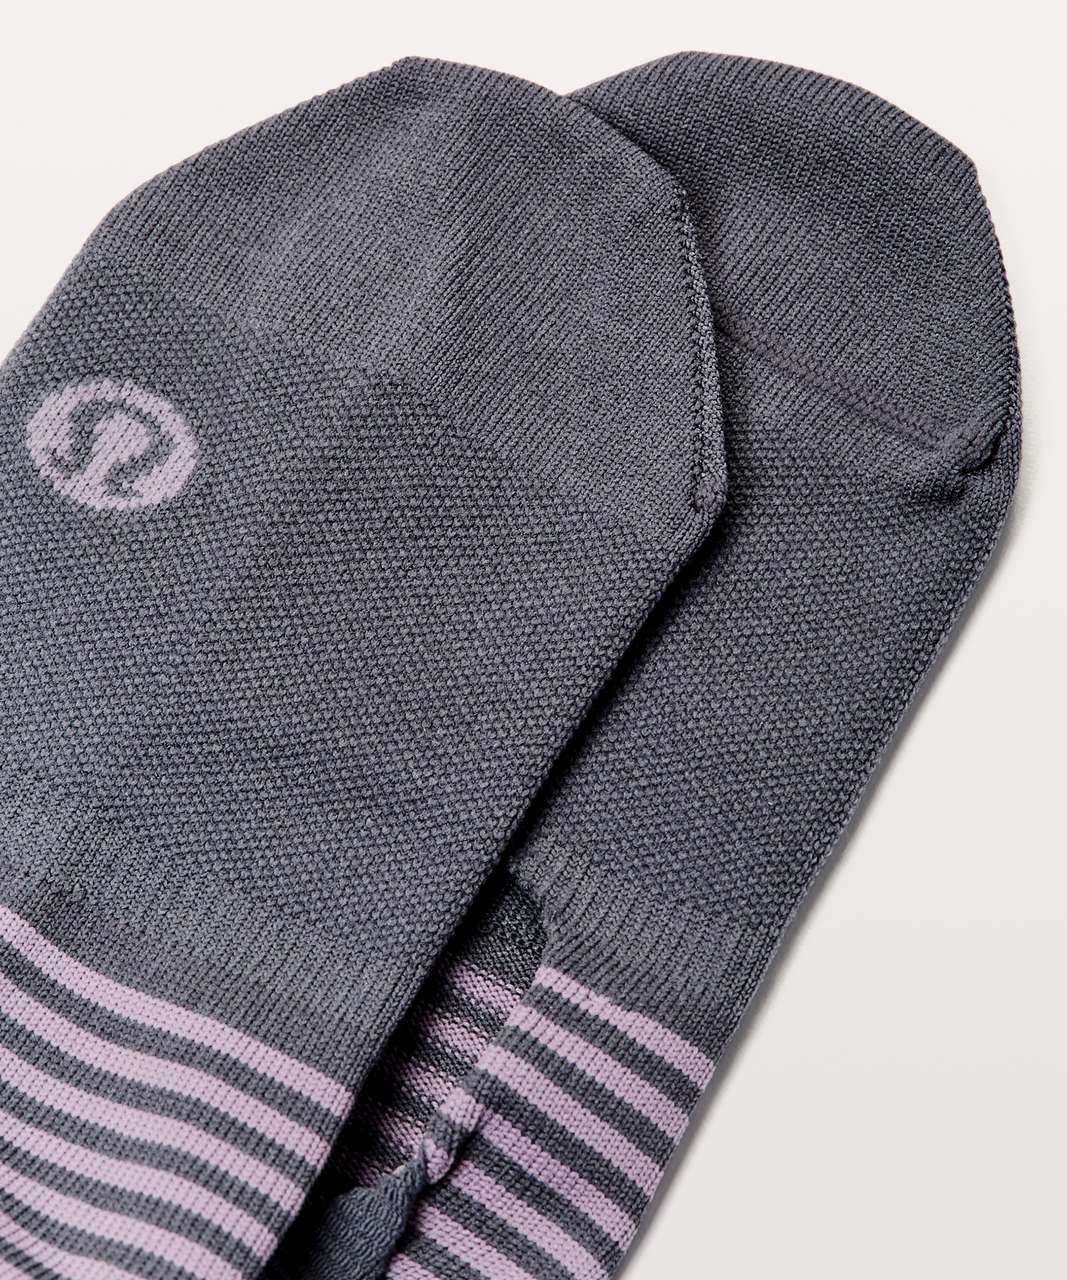 Lululemon Secret Sock - Nebula / Dusty Dawn